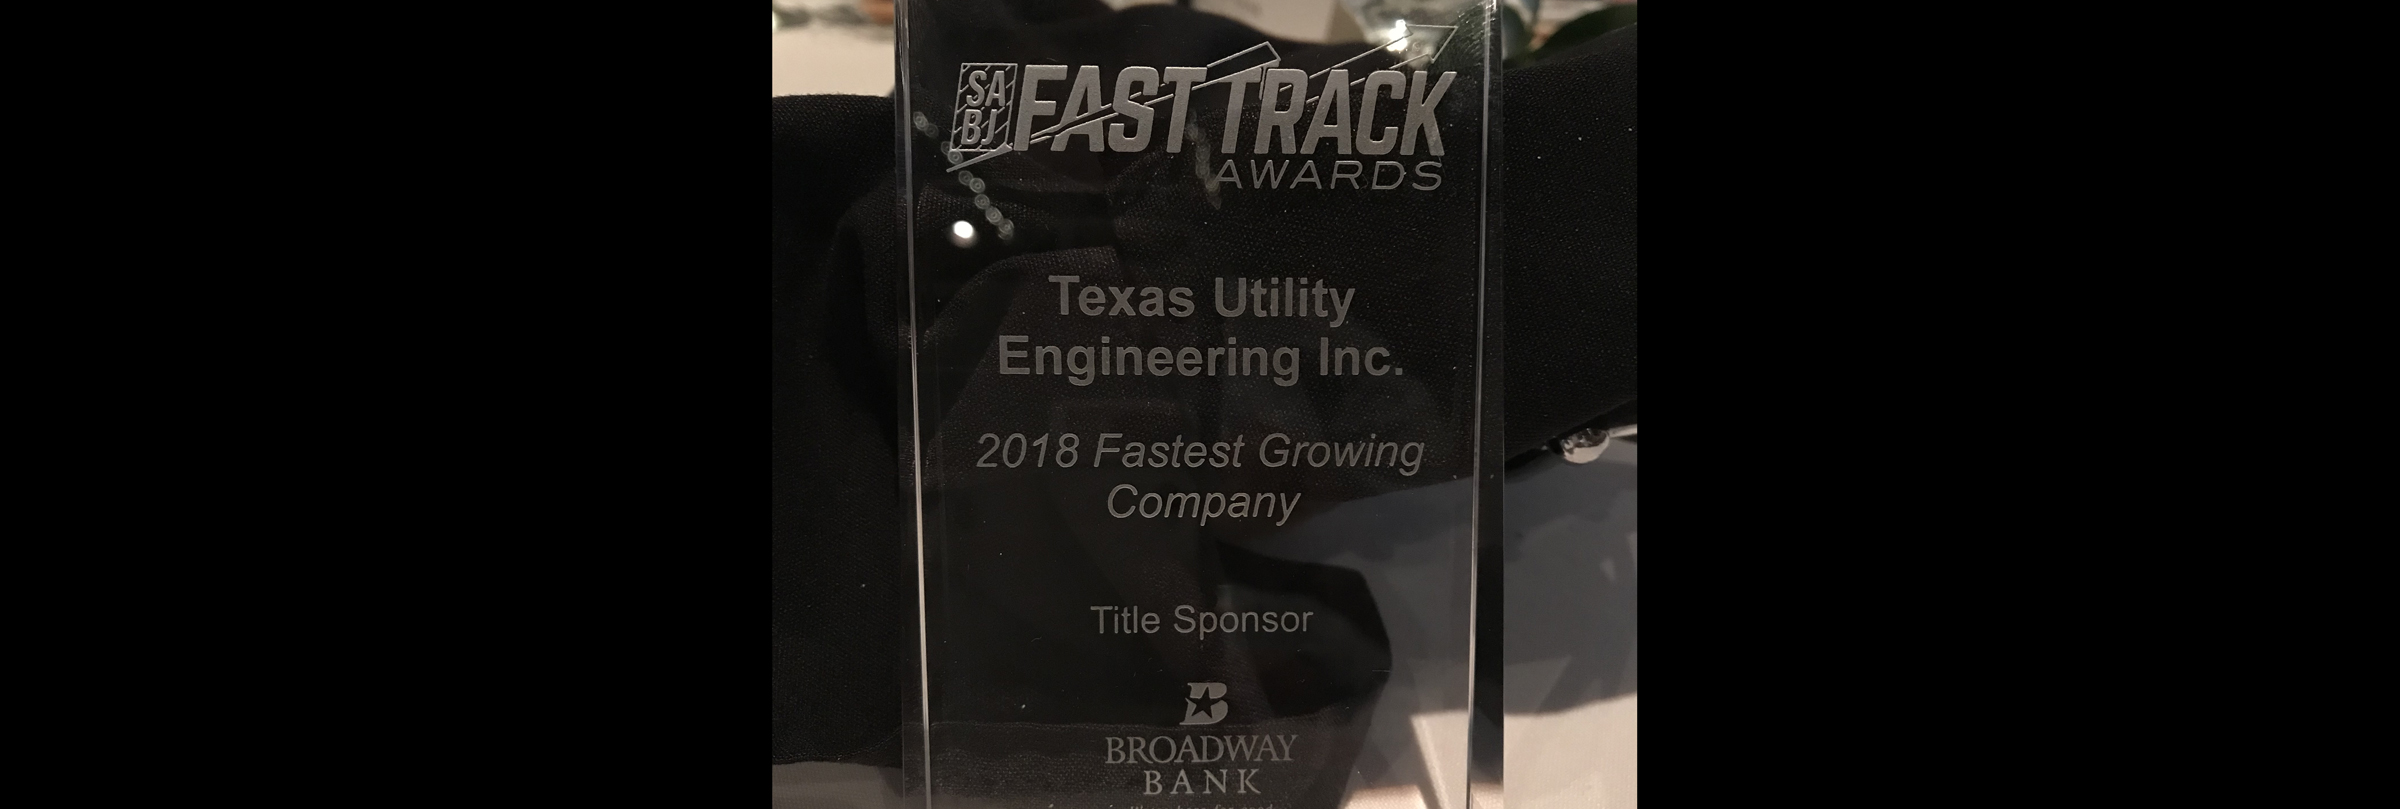 TXUE Listed as a Fast Track Co. for 8th Time